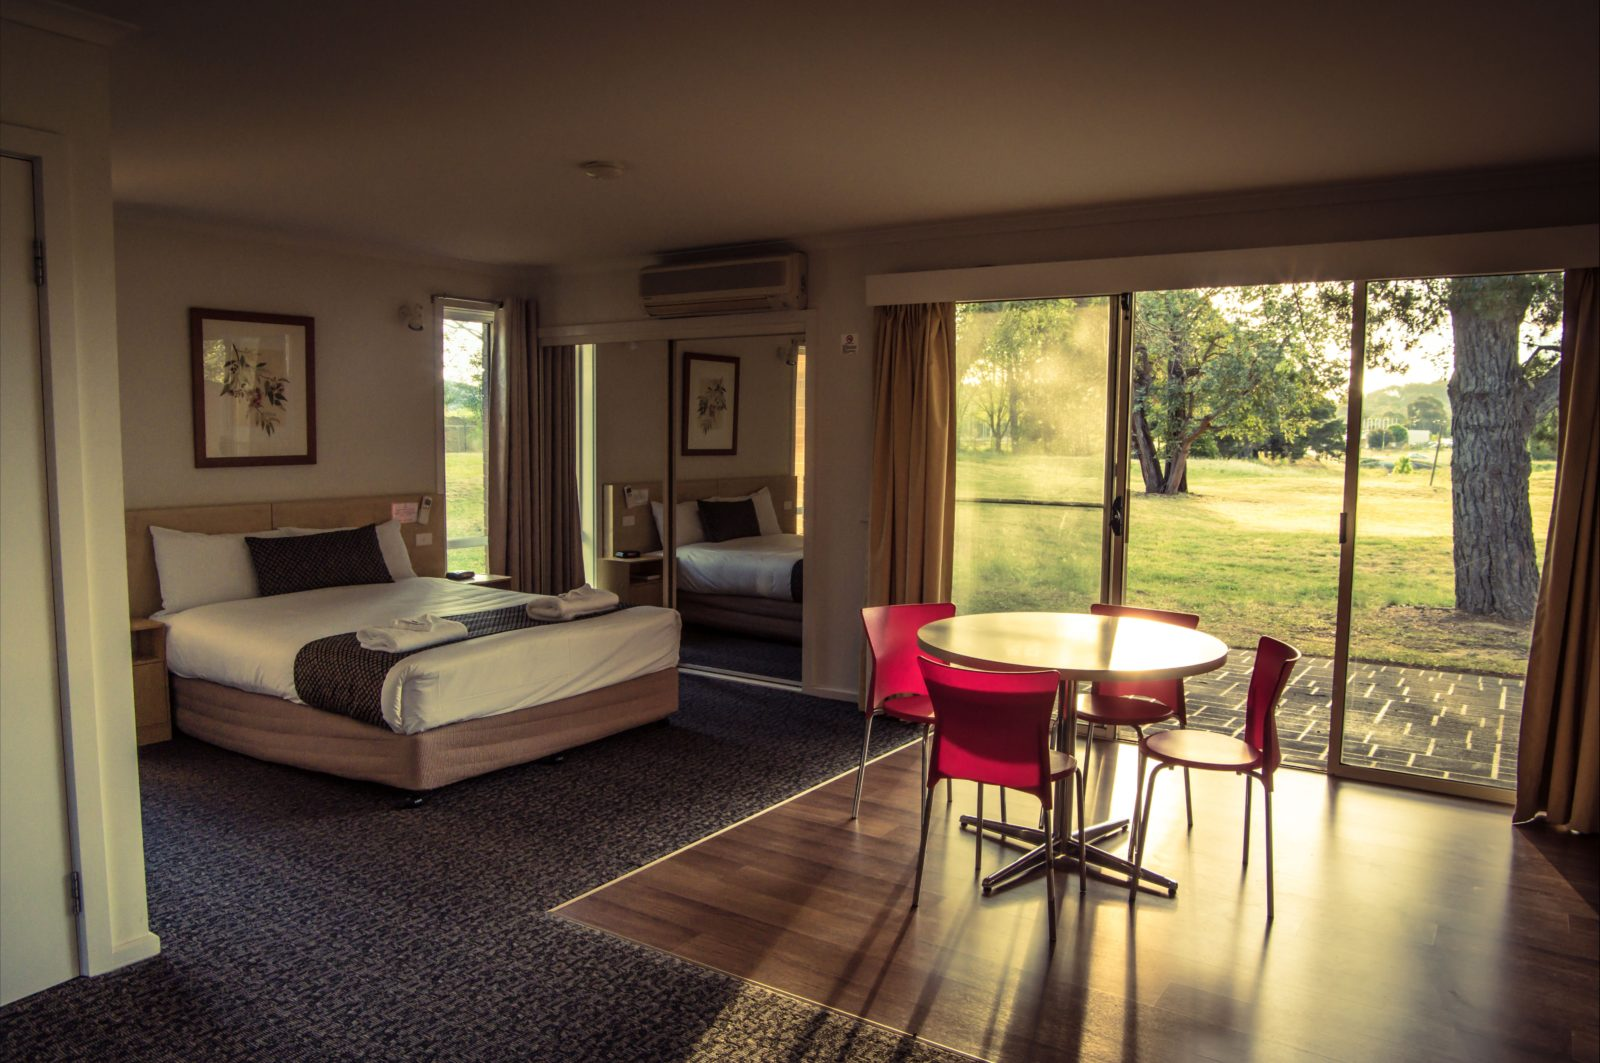 Yowani Country Club motel room interior with views of the golf course